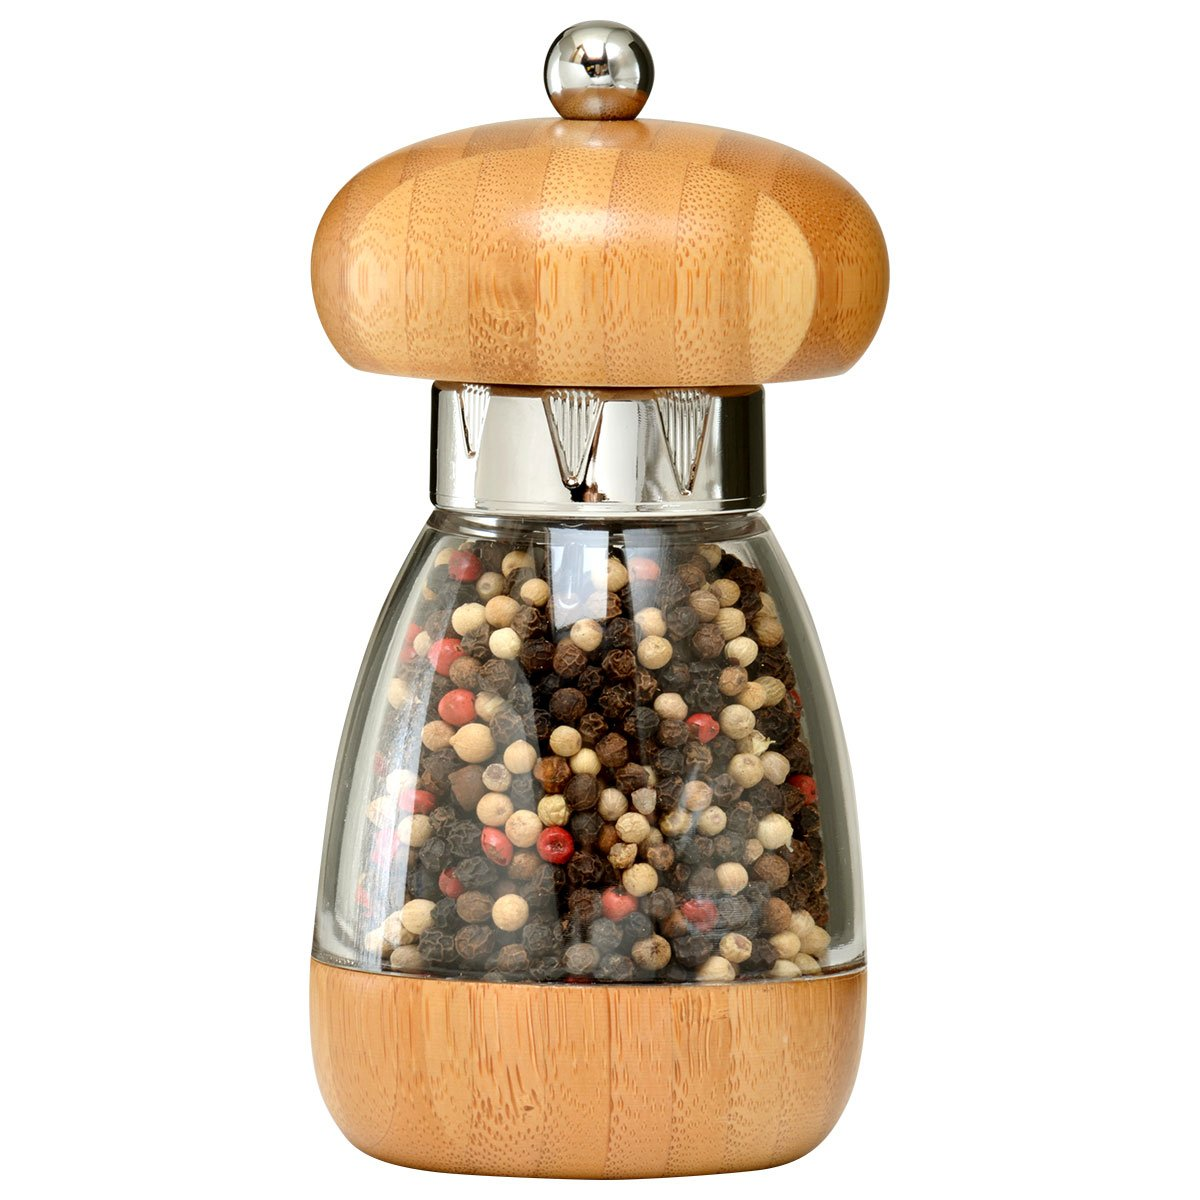 William Bounds 00137 Mushroom Mill - Pepper Grinder - Bamboo and Acrylic